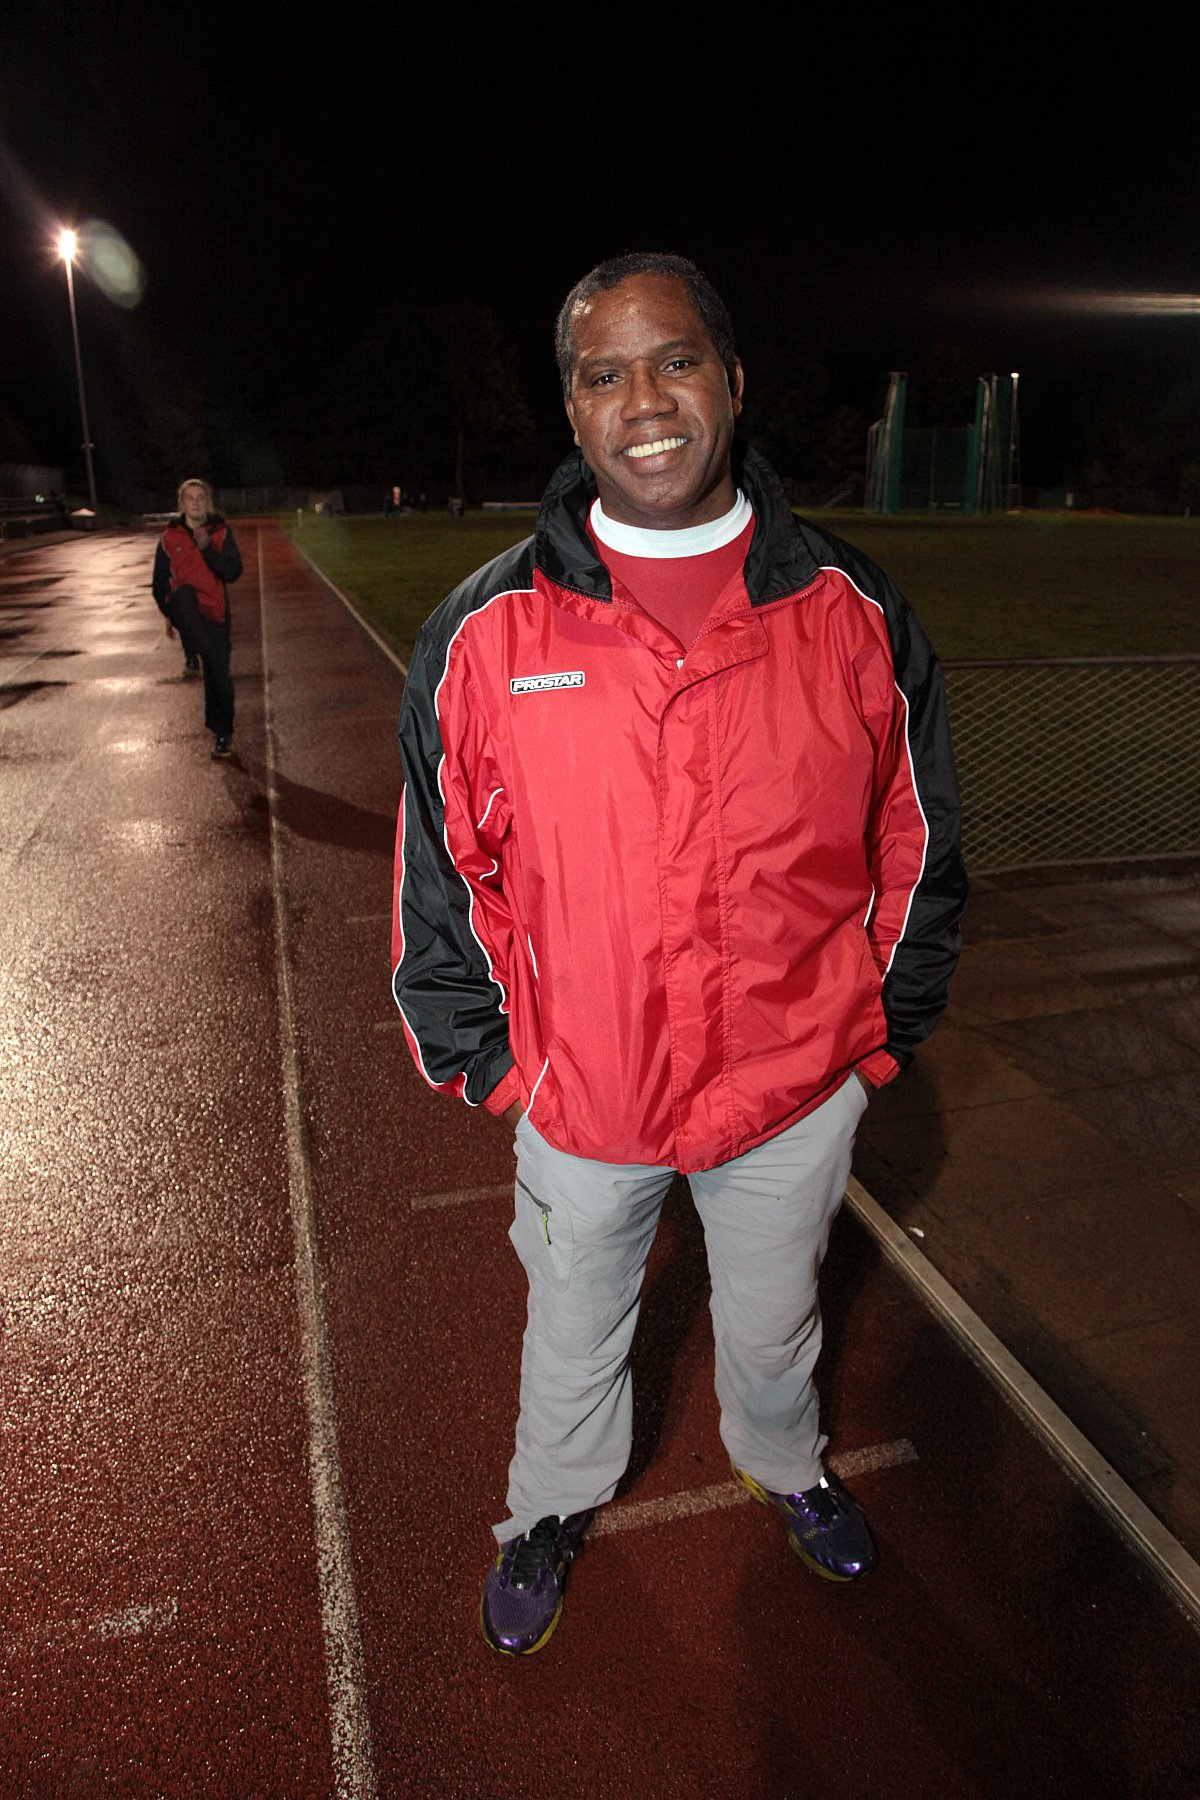 Proud: Herne Hill Harriers coach James McDonal